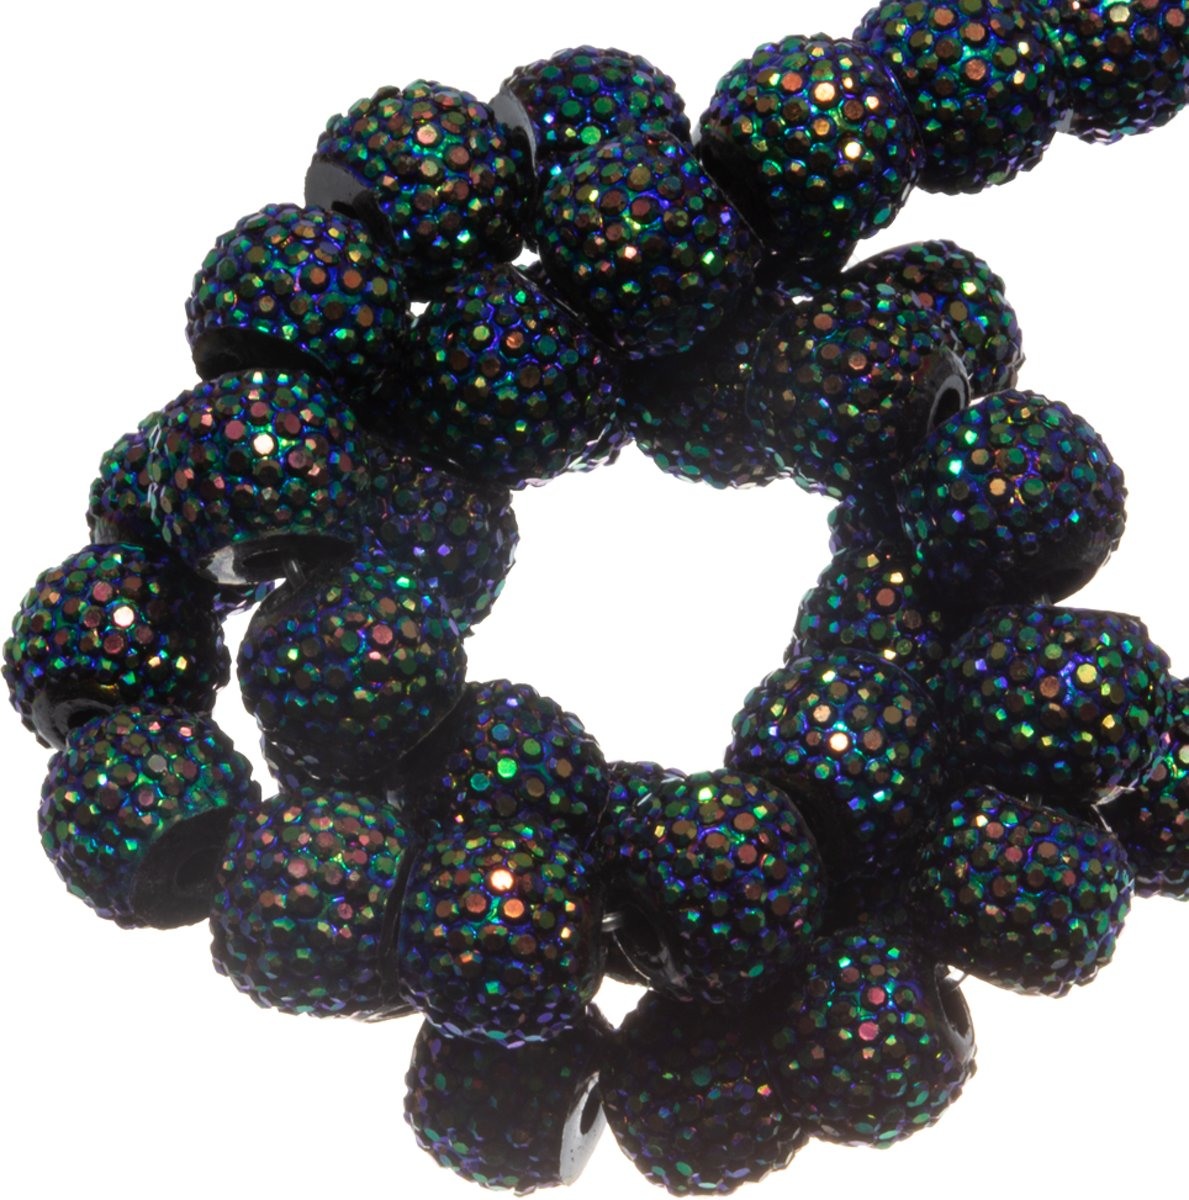 Acryl Kralen Rhinestone (4 mm) Shine Mix Black (45 Stuks)